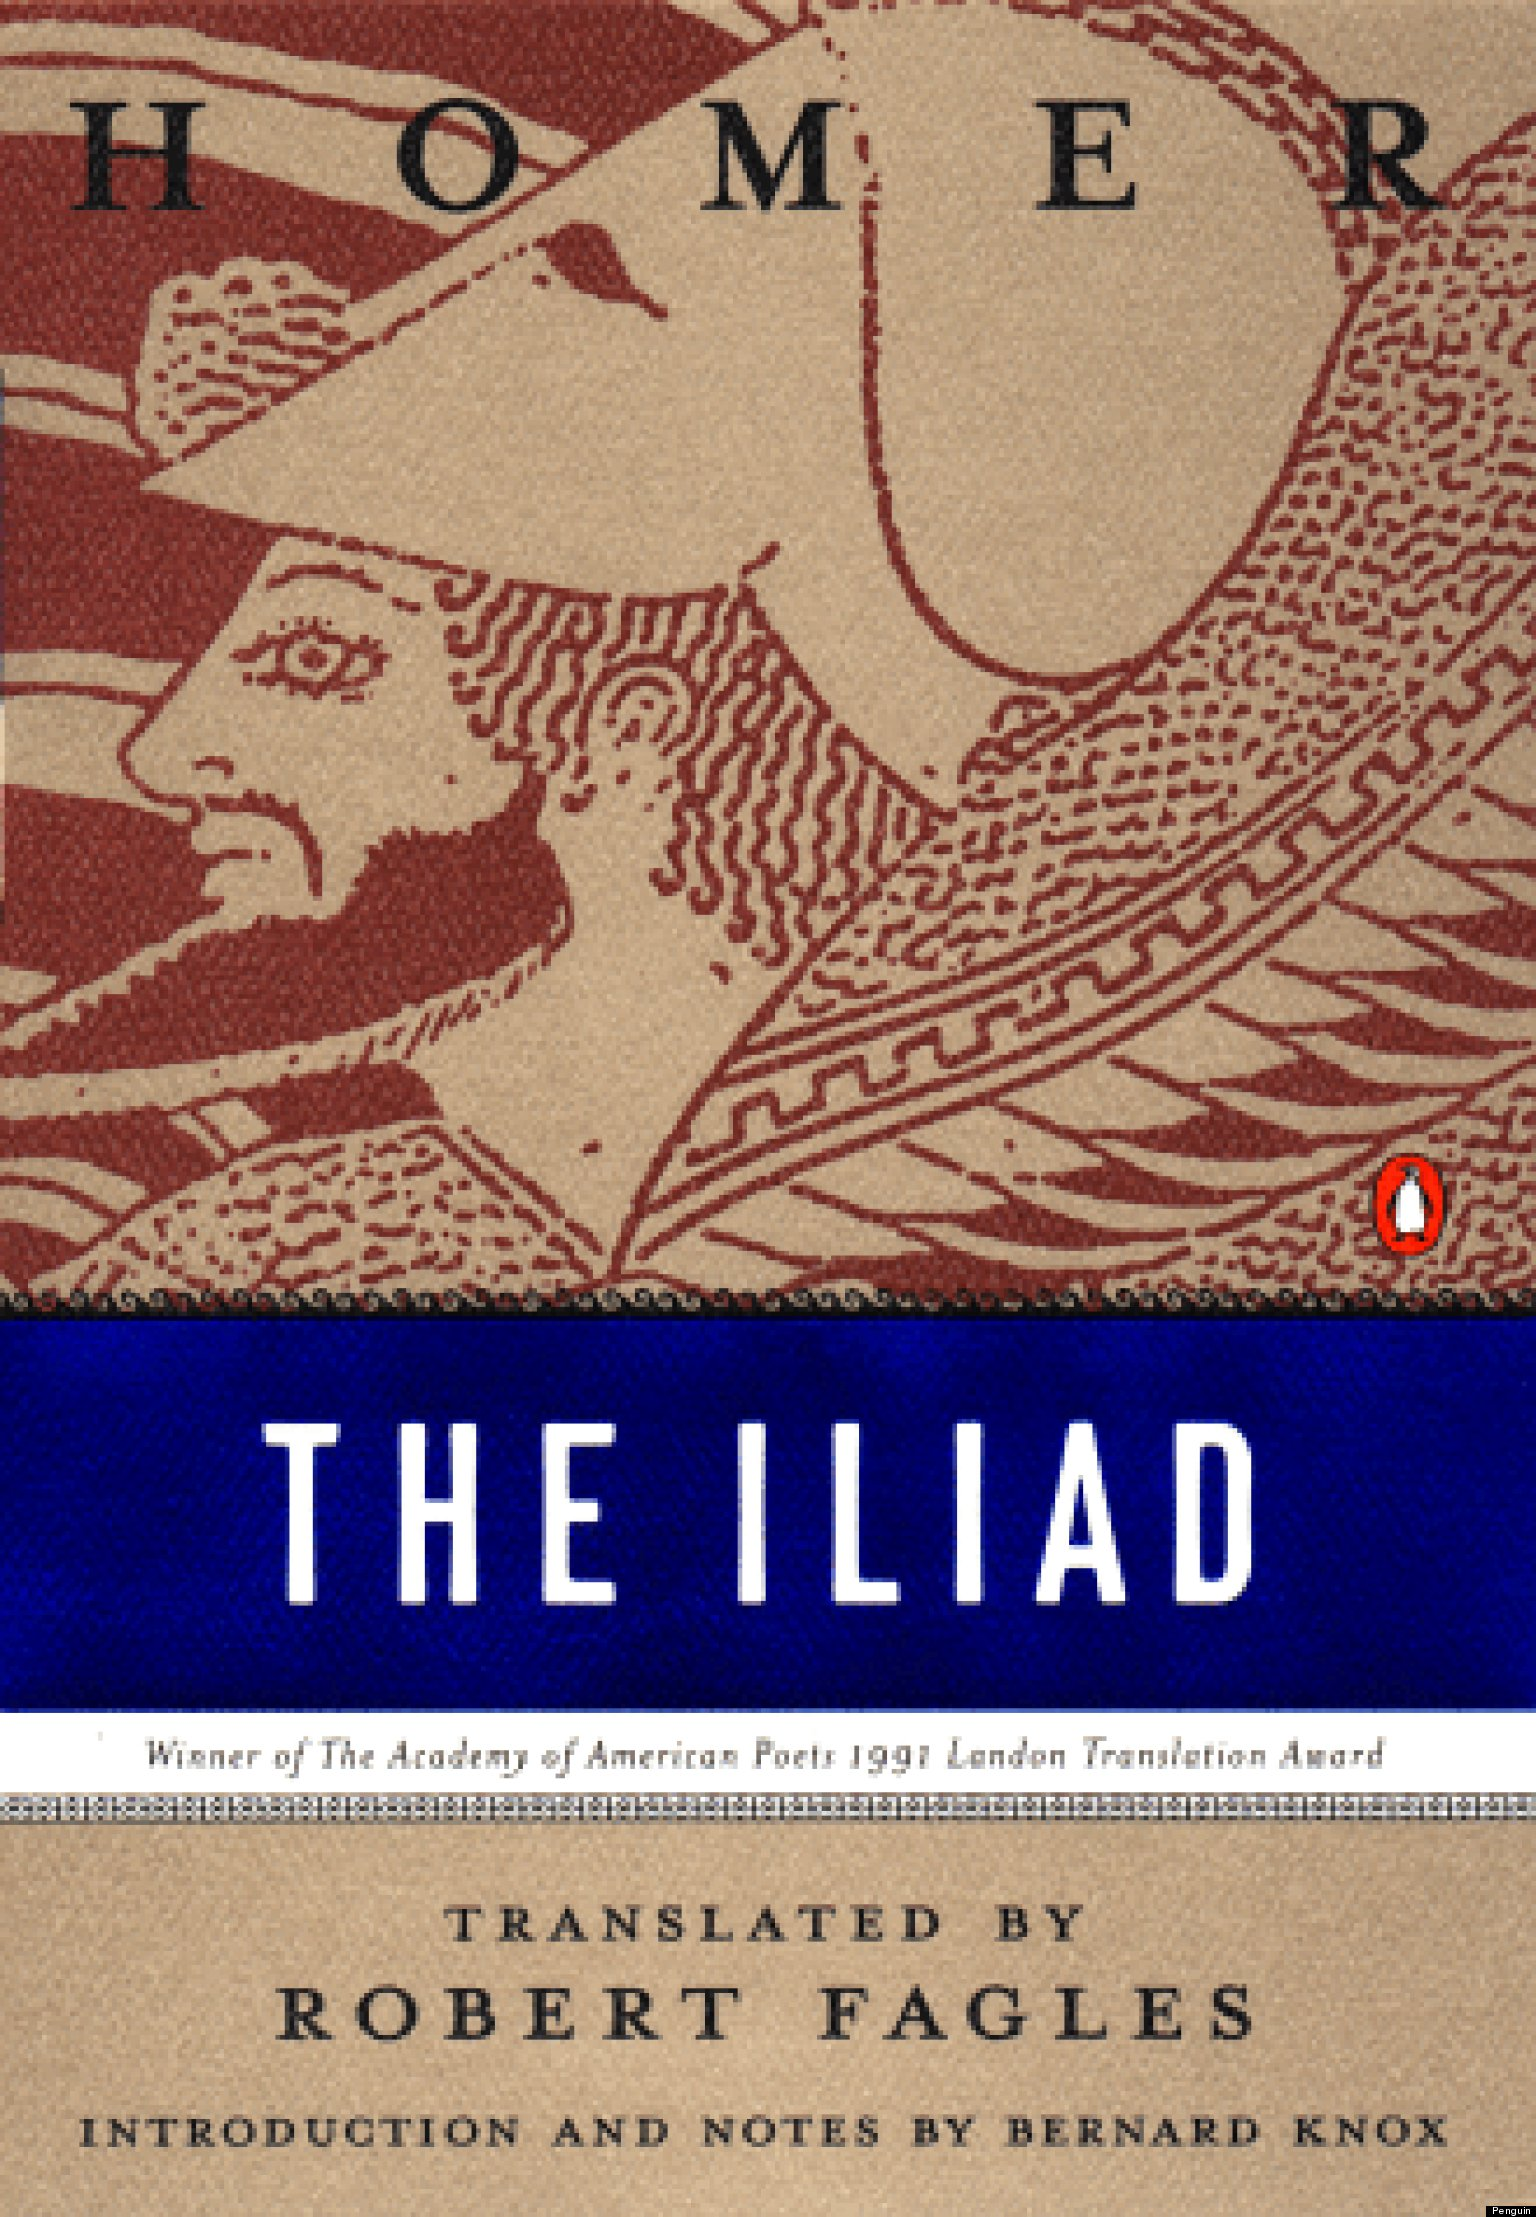 the iliad by homer book review